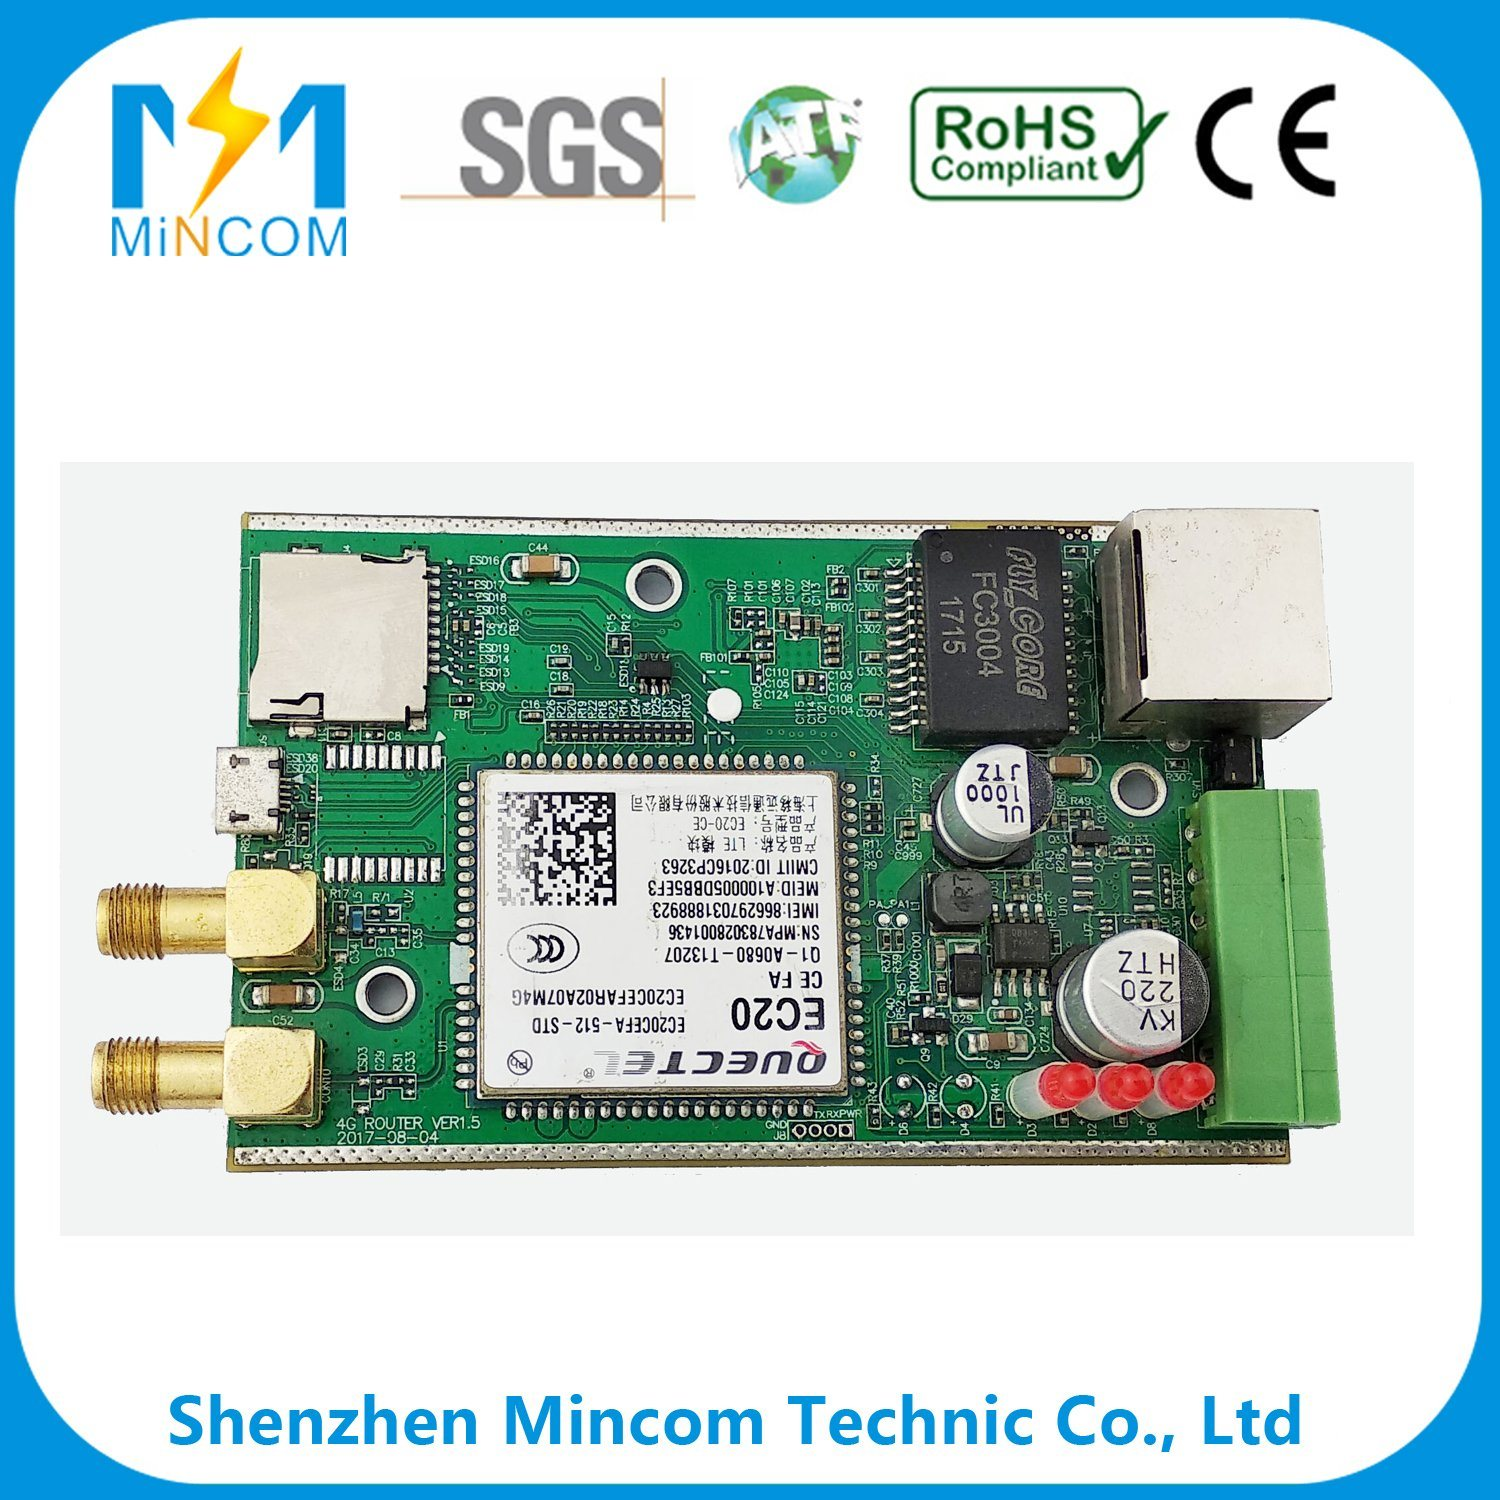 Wholesale Printed Circuit Pcb Buy Reliable Shenzhen Oem Electronic Board Manufacturerpcb Customized High Quality Industrial Controlling